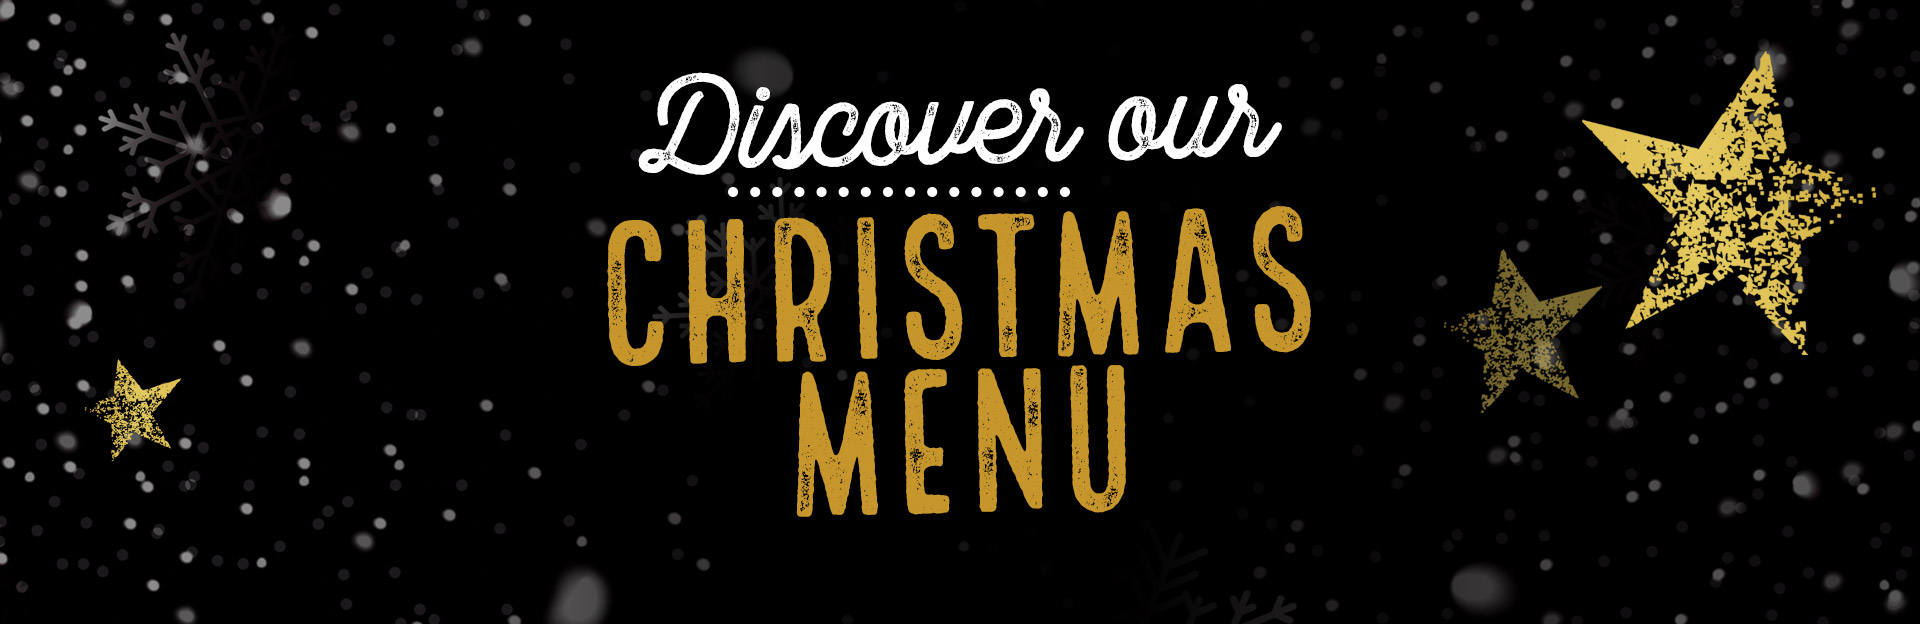 Craic it up this Christmas at The Green Dragon